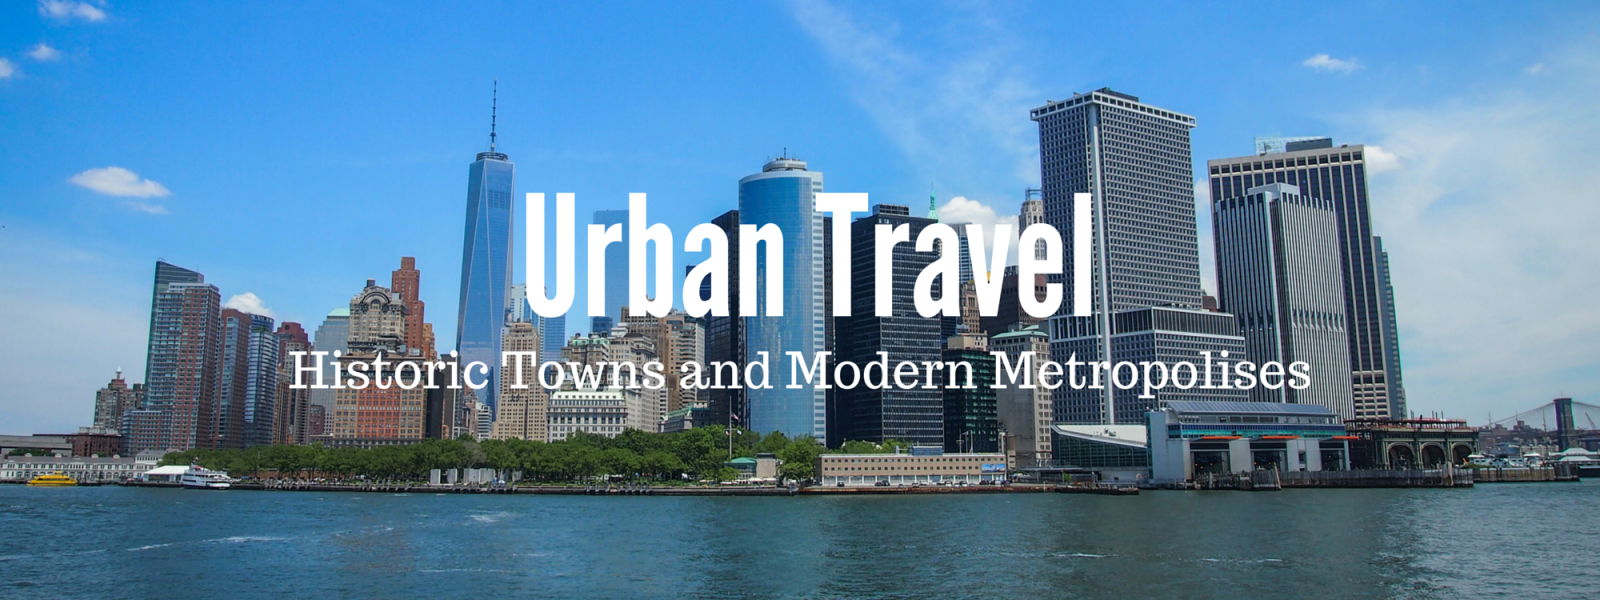 Urban Travel - Travel. Experience. Live.